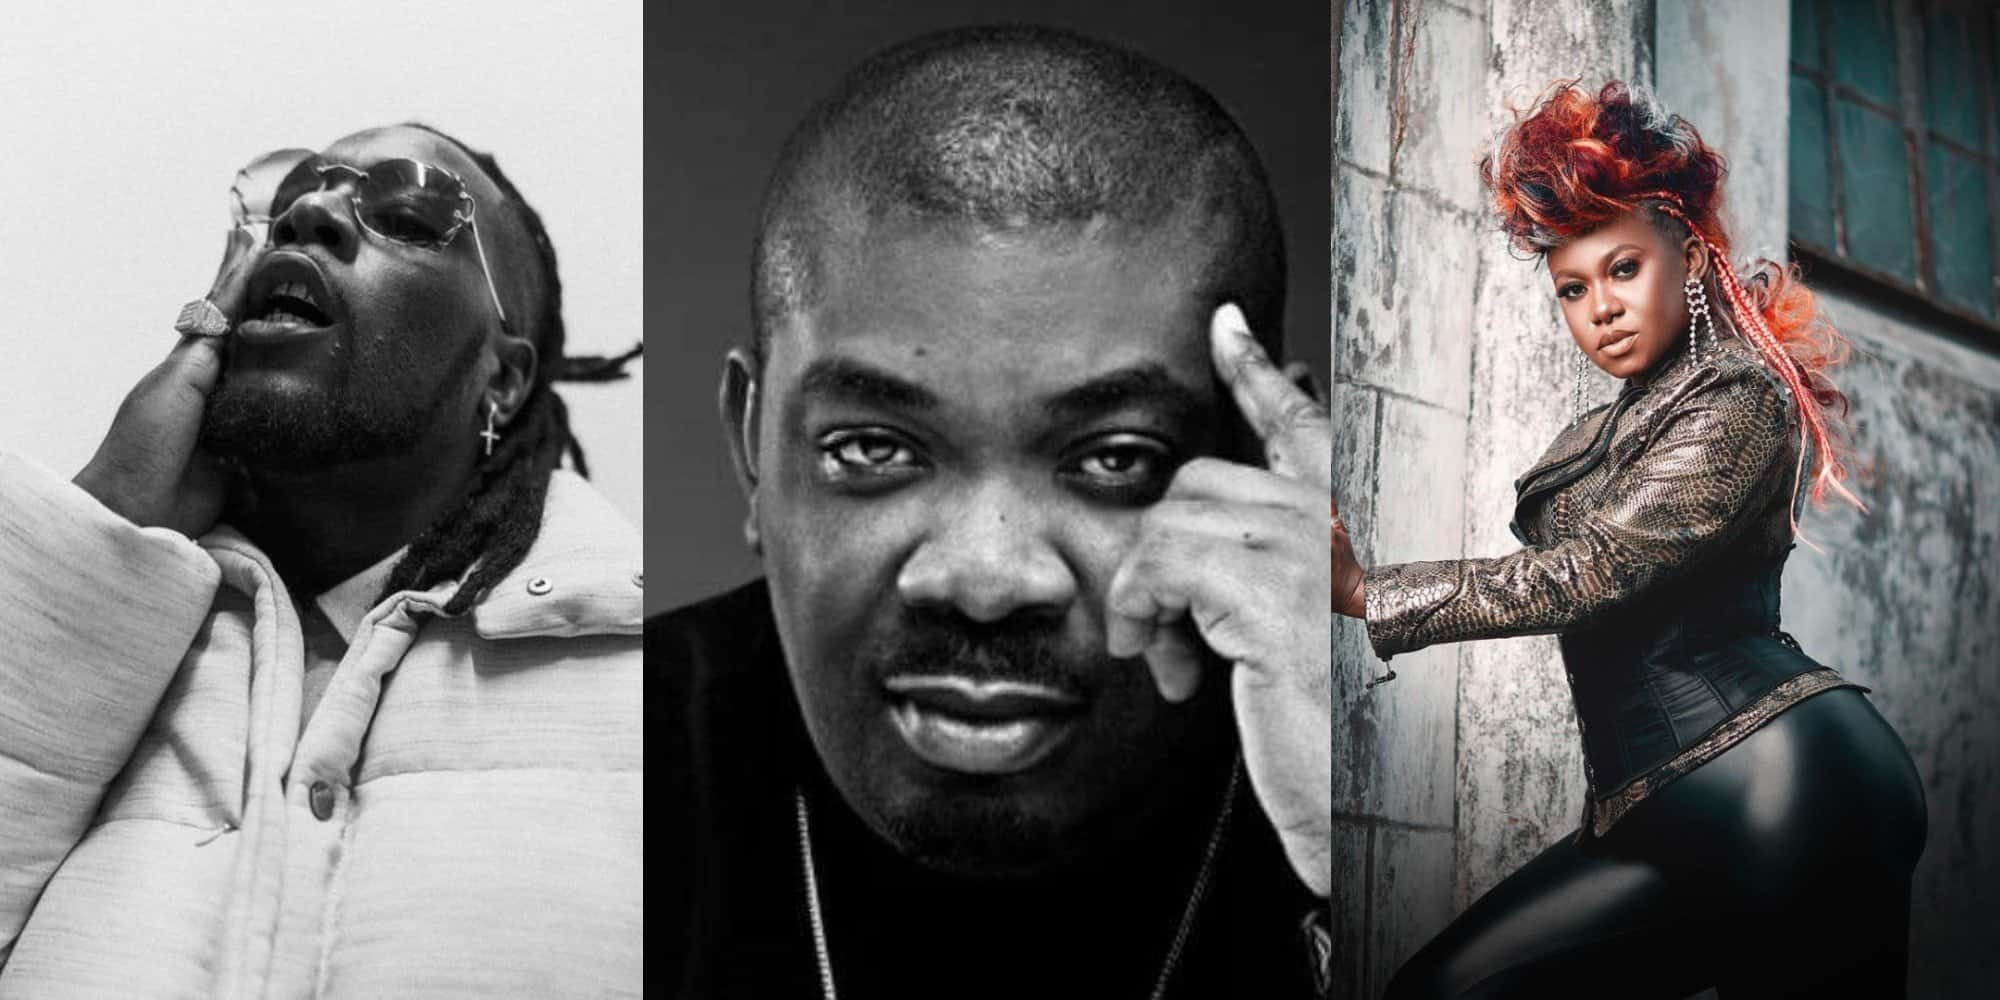 Songs Of The Day: New Music From Don Jazzy, Burna Boy, Niniola & More